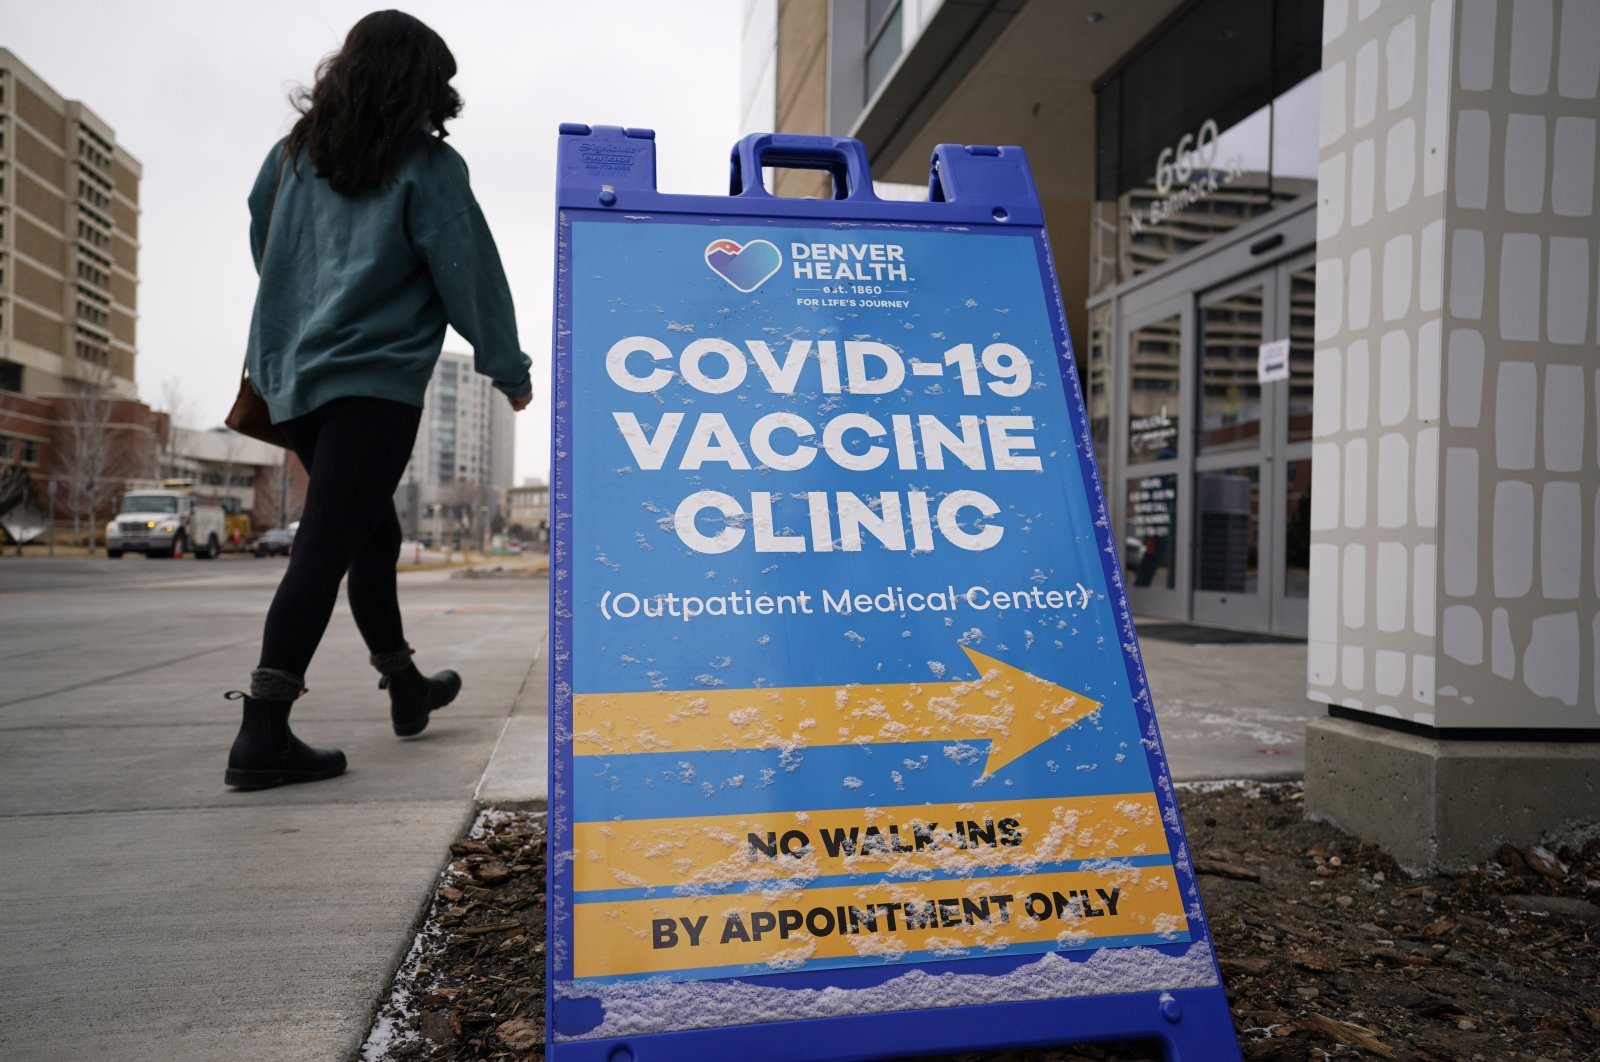 A woman heads in for a COVID-19 vaccination during a mass vaccination of 1,000 employees of Denver Public Schools including teachers, administrators, custodial workers and bus drivers at Denver Health, in Denver, Colorado, U.S., Feb. 13, 2021. (AP File Photo)